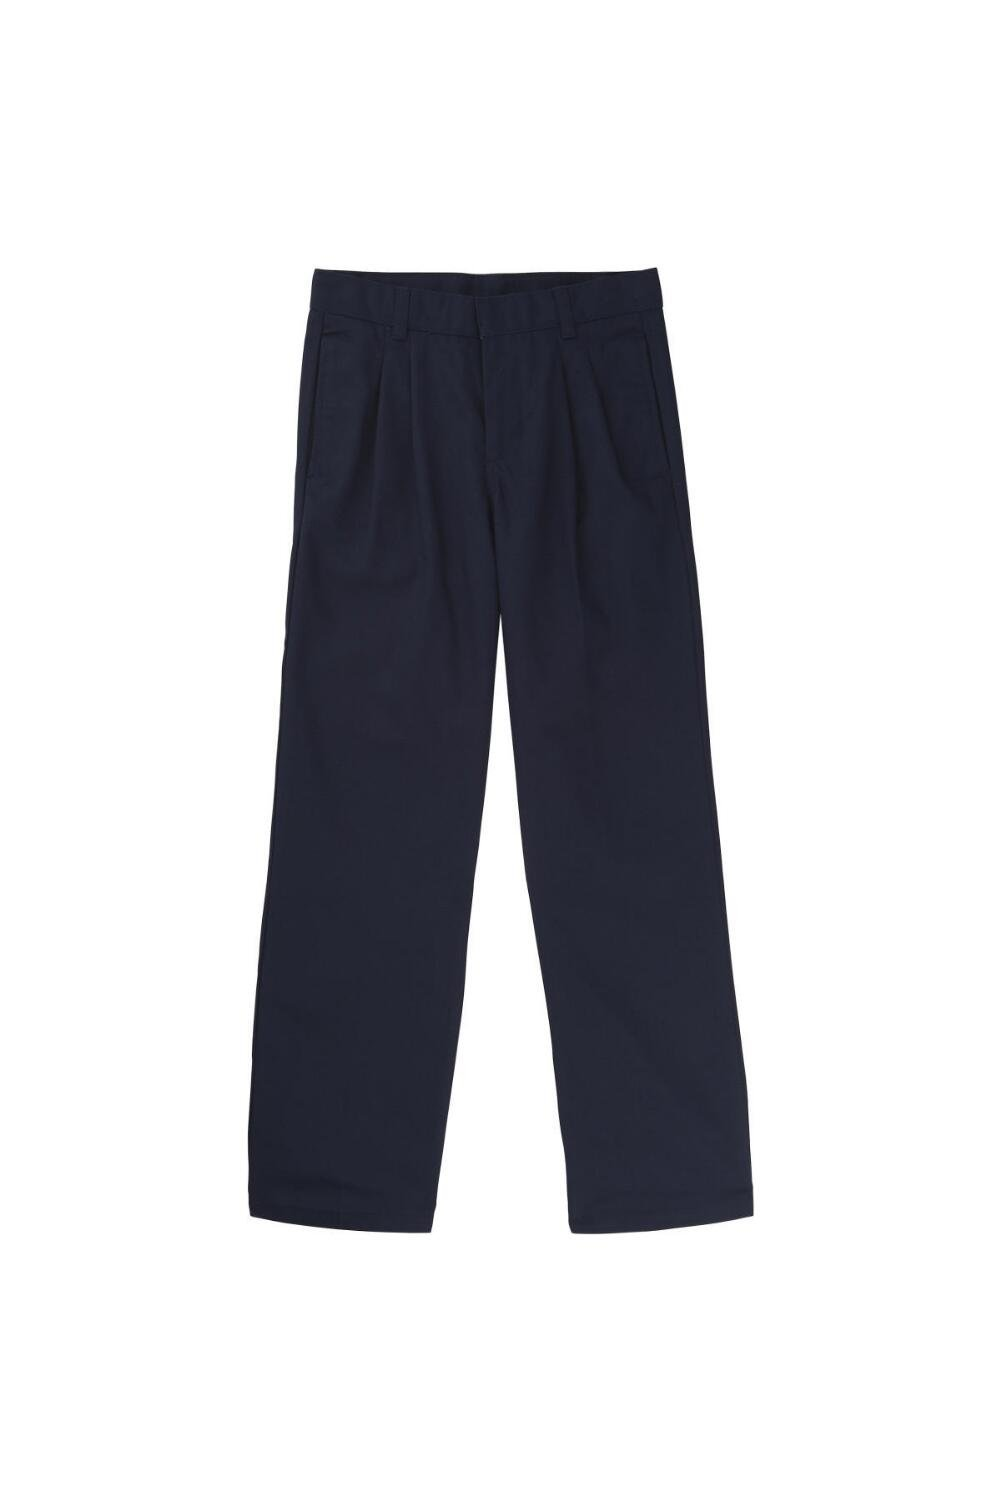 French Toast Big Boys' Relaxed Fit Pleated Pant, Navy, 12